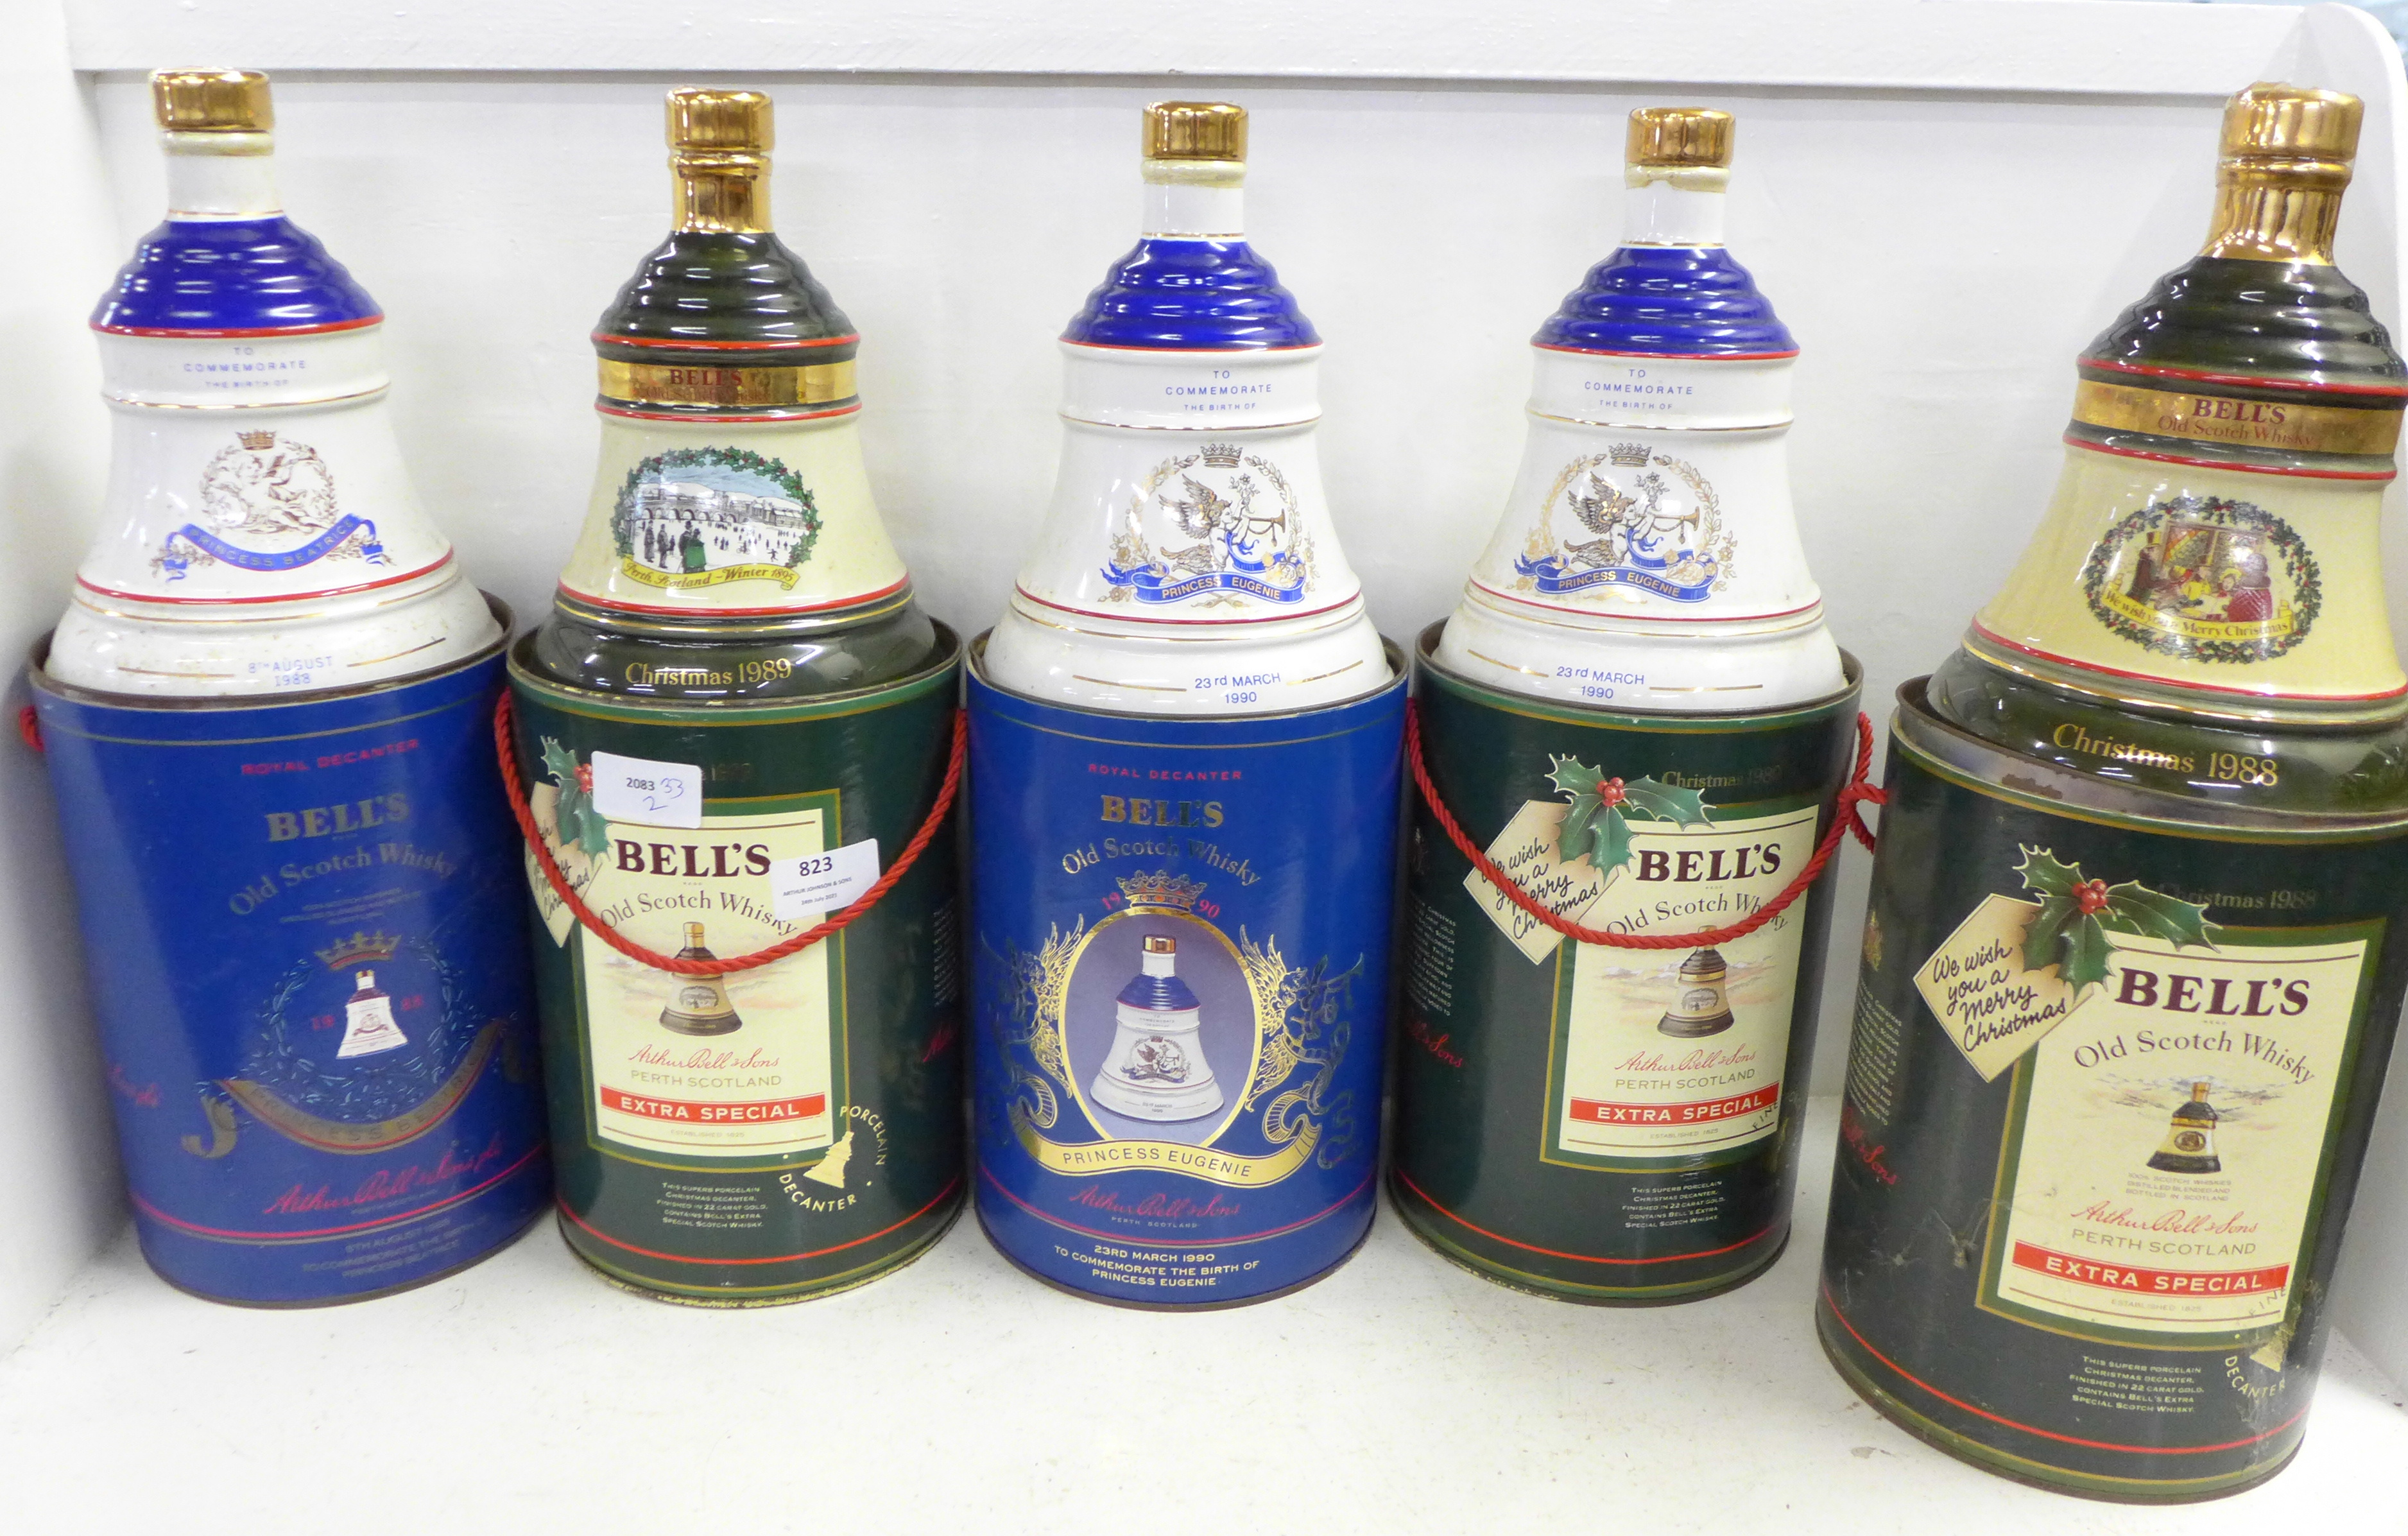 Five Bell's Old Scotch Whisky decanters in containers; three Extra Special